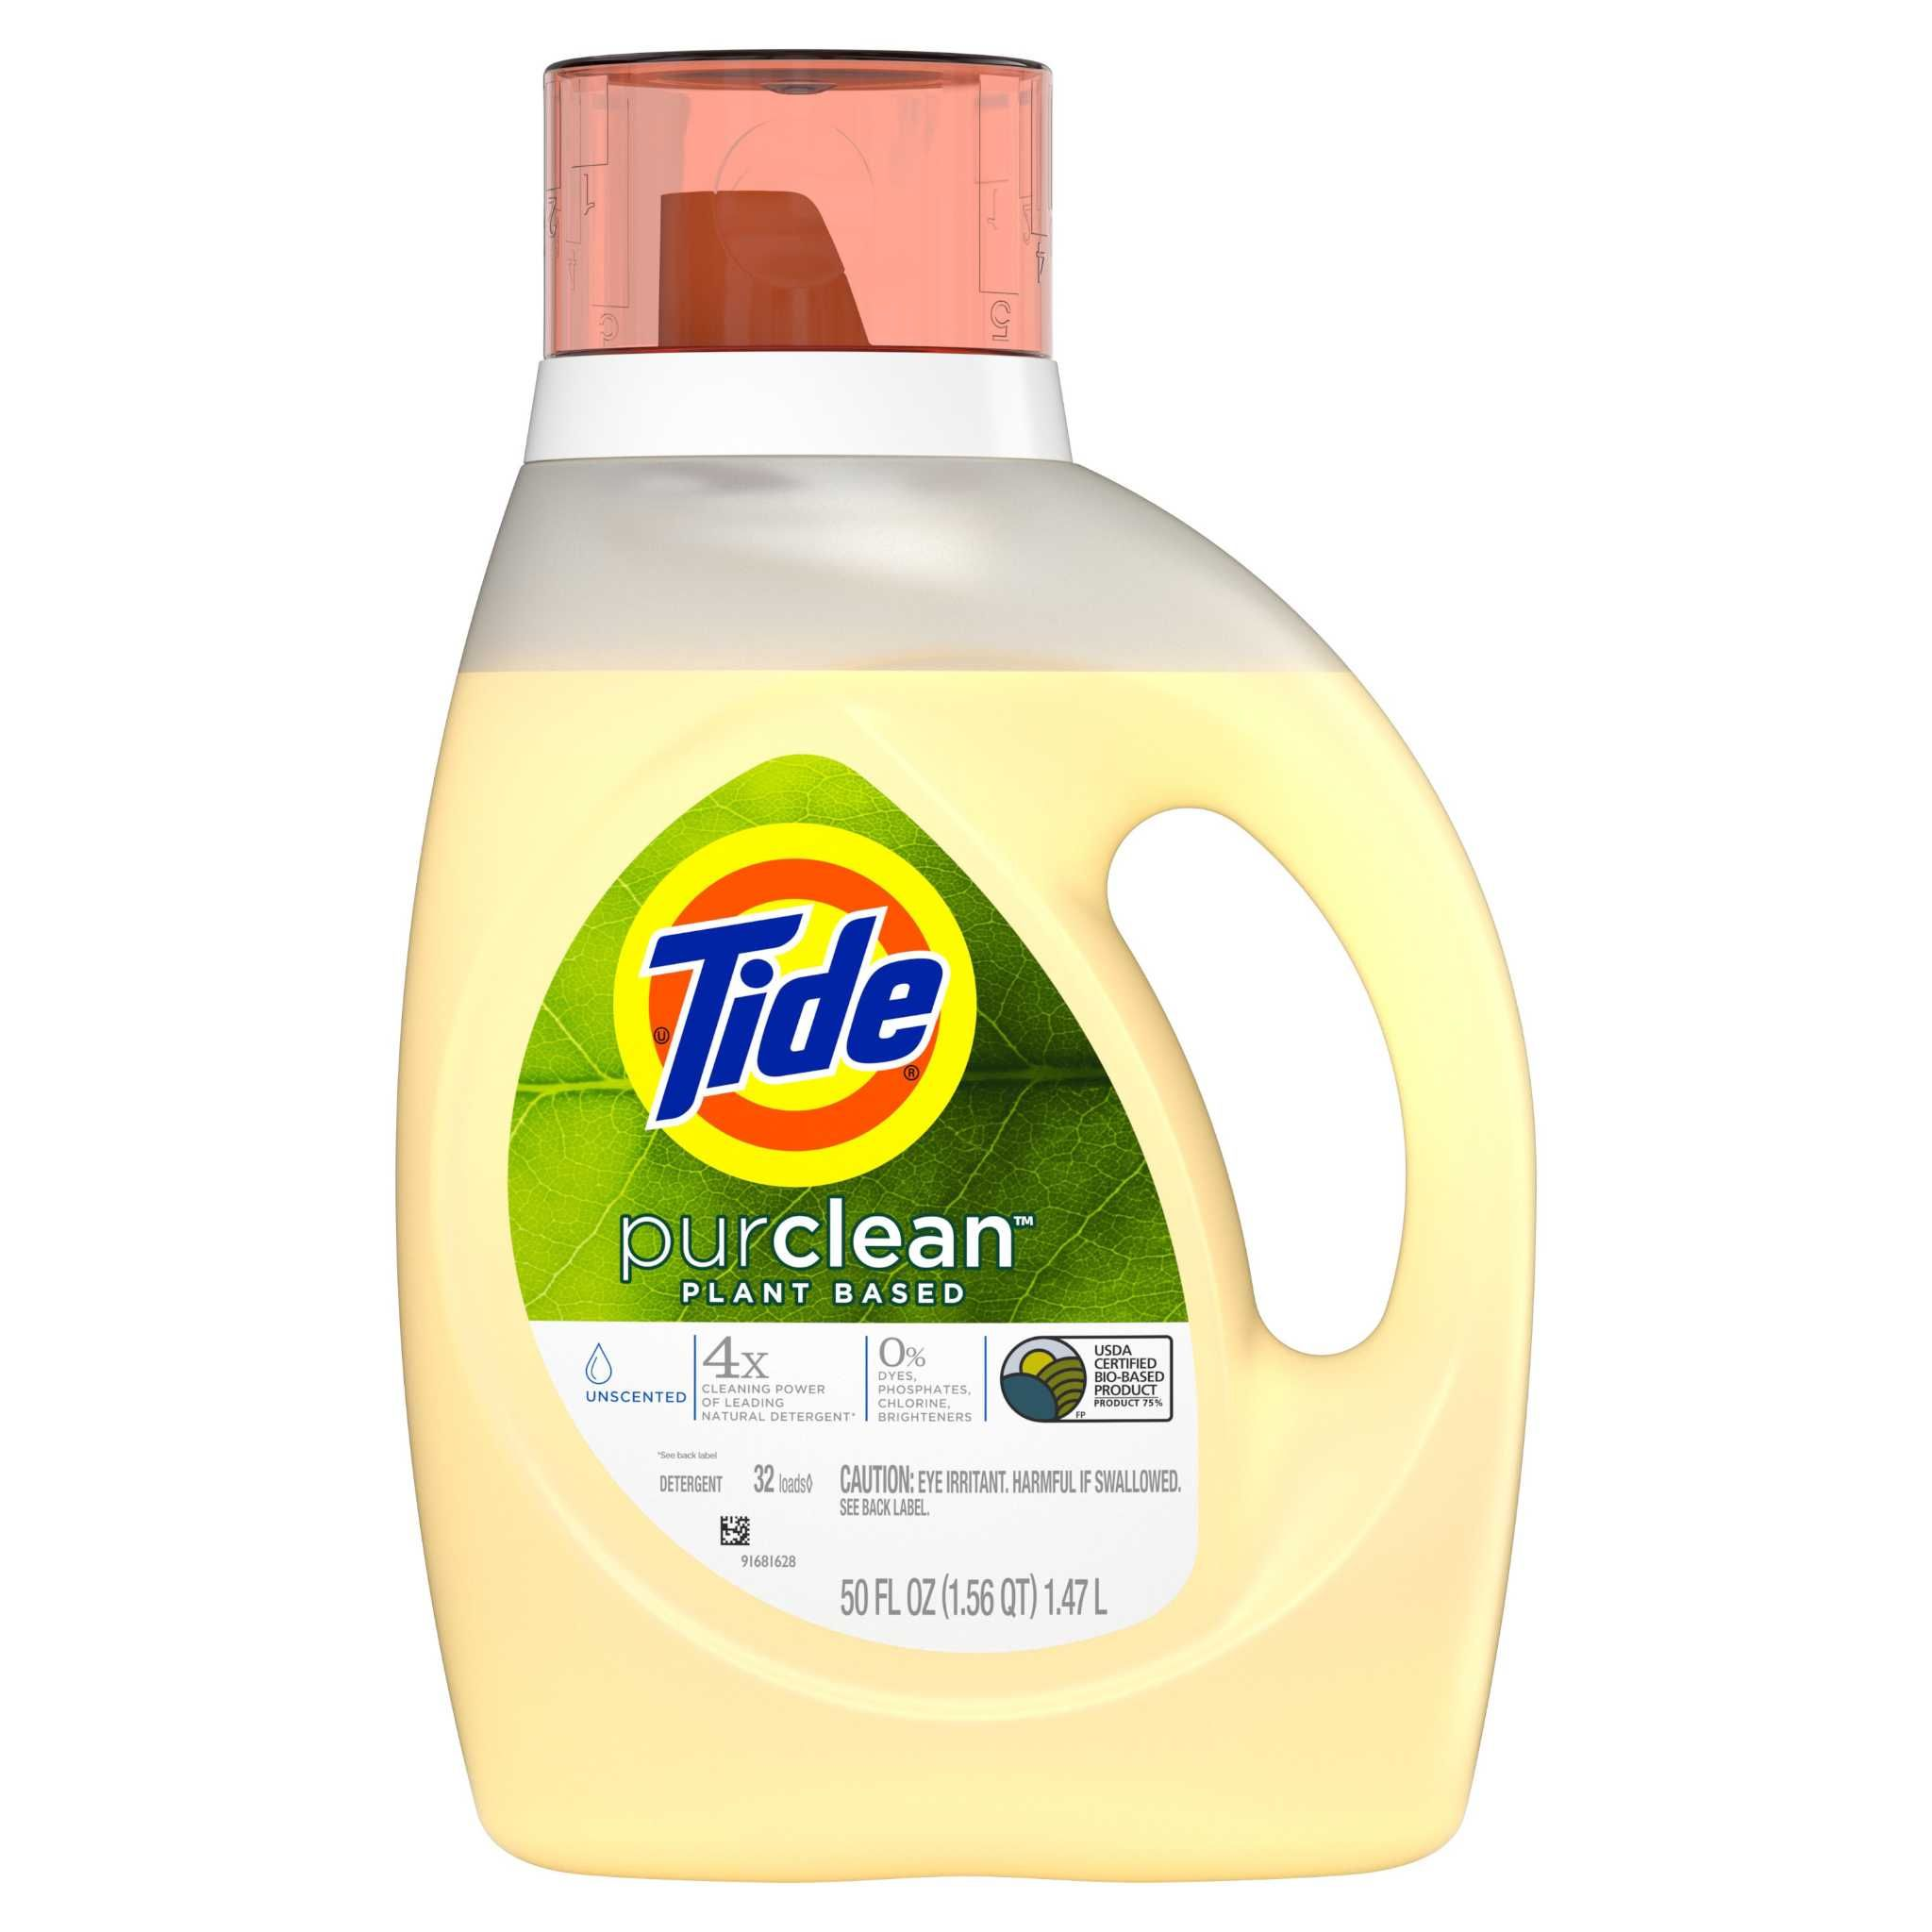 Protect Your Clothes With The Right Detergent Laundry Detergent